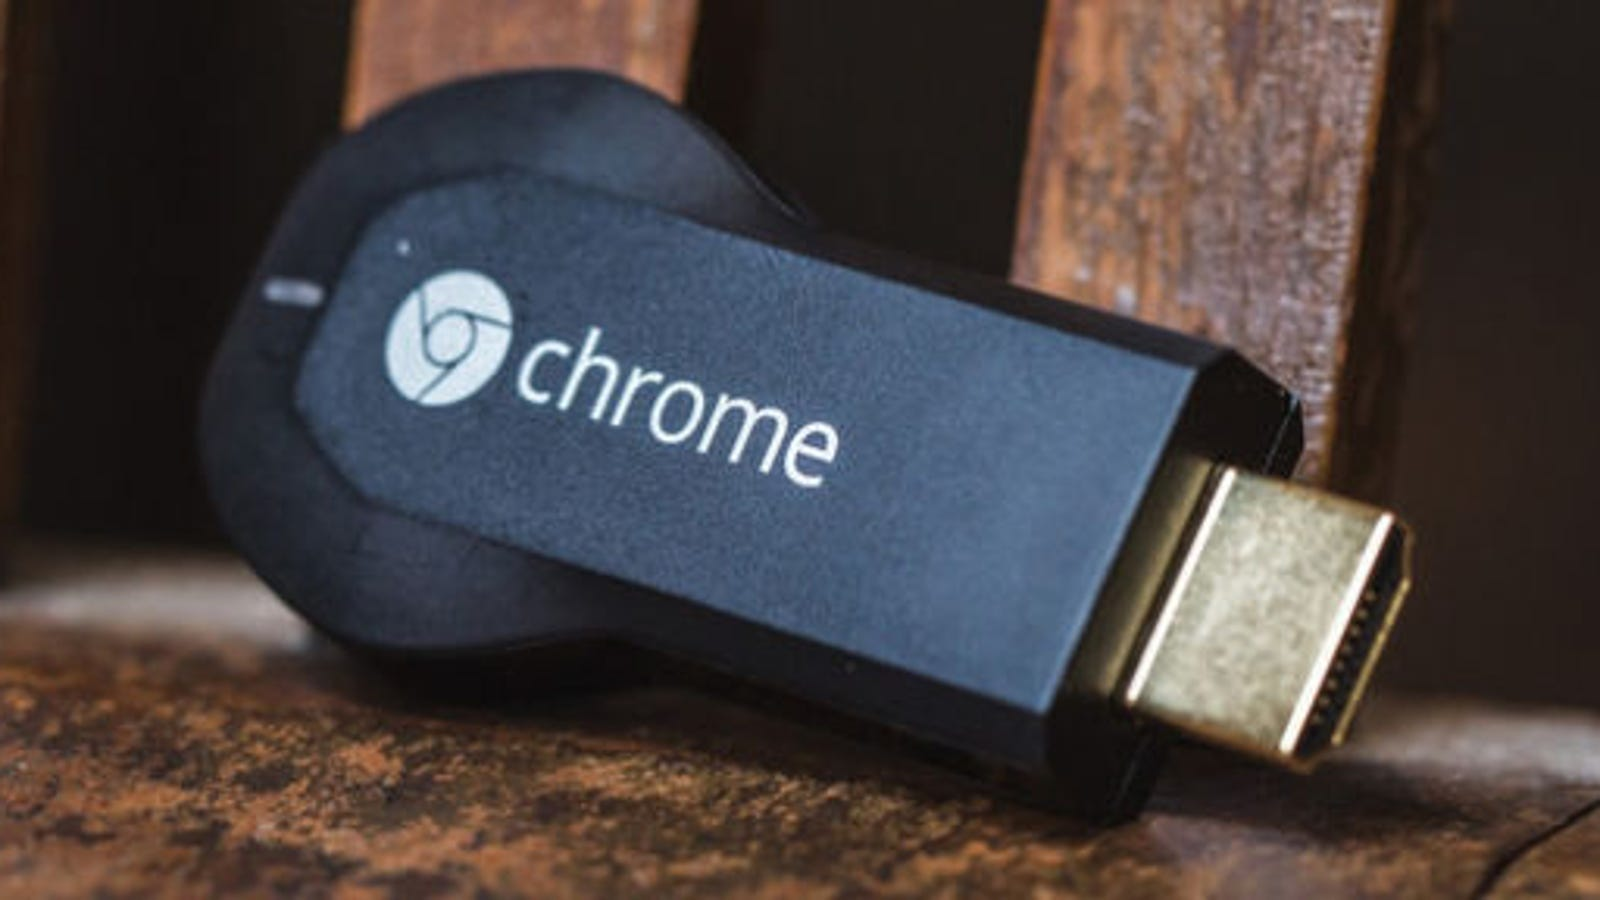 Chromecast's New Slingbox App Puts Your Entire TV Lineup in Your Pocket